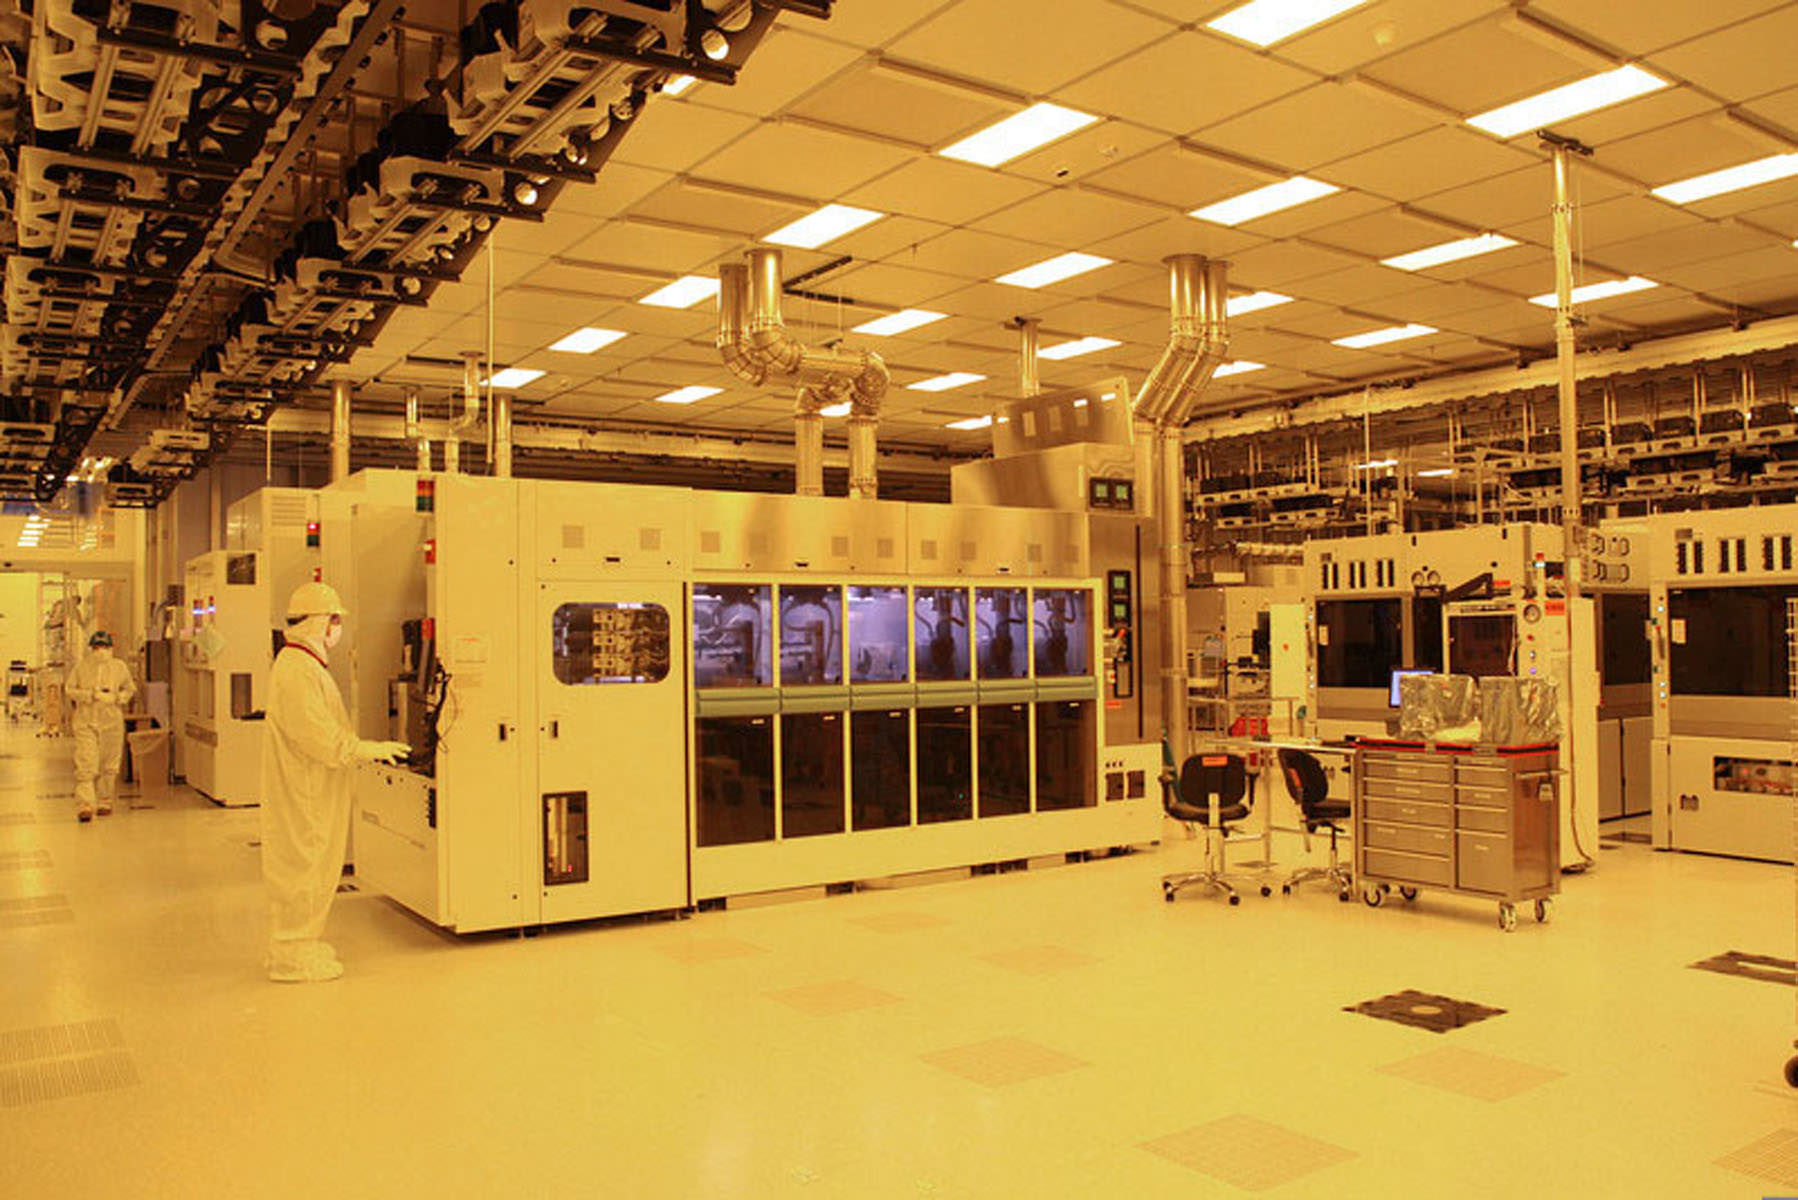 GLOBALFOUNDRIES Fab 8 1 Expansion | The Pike Company